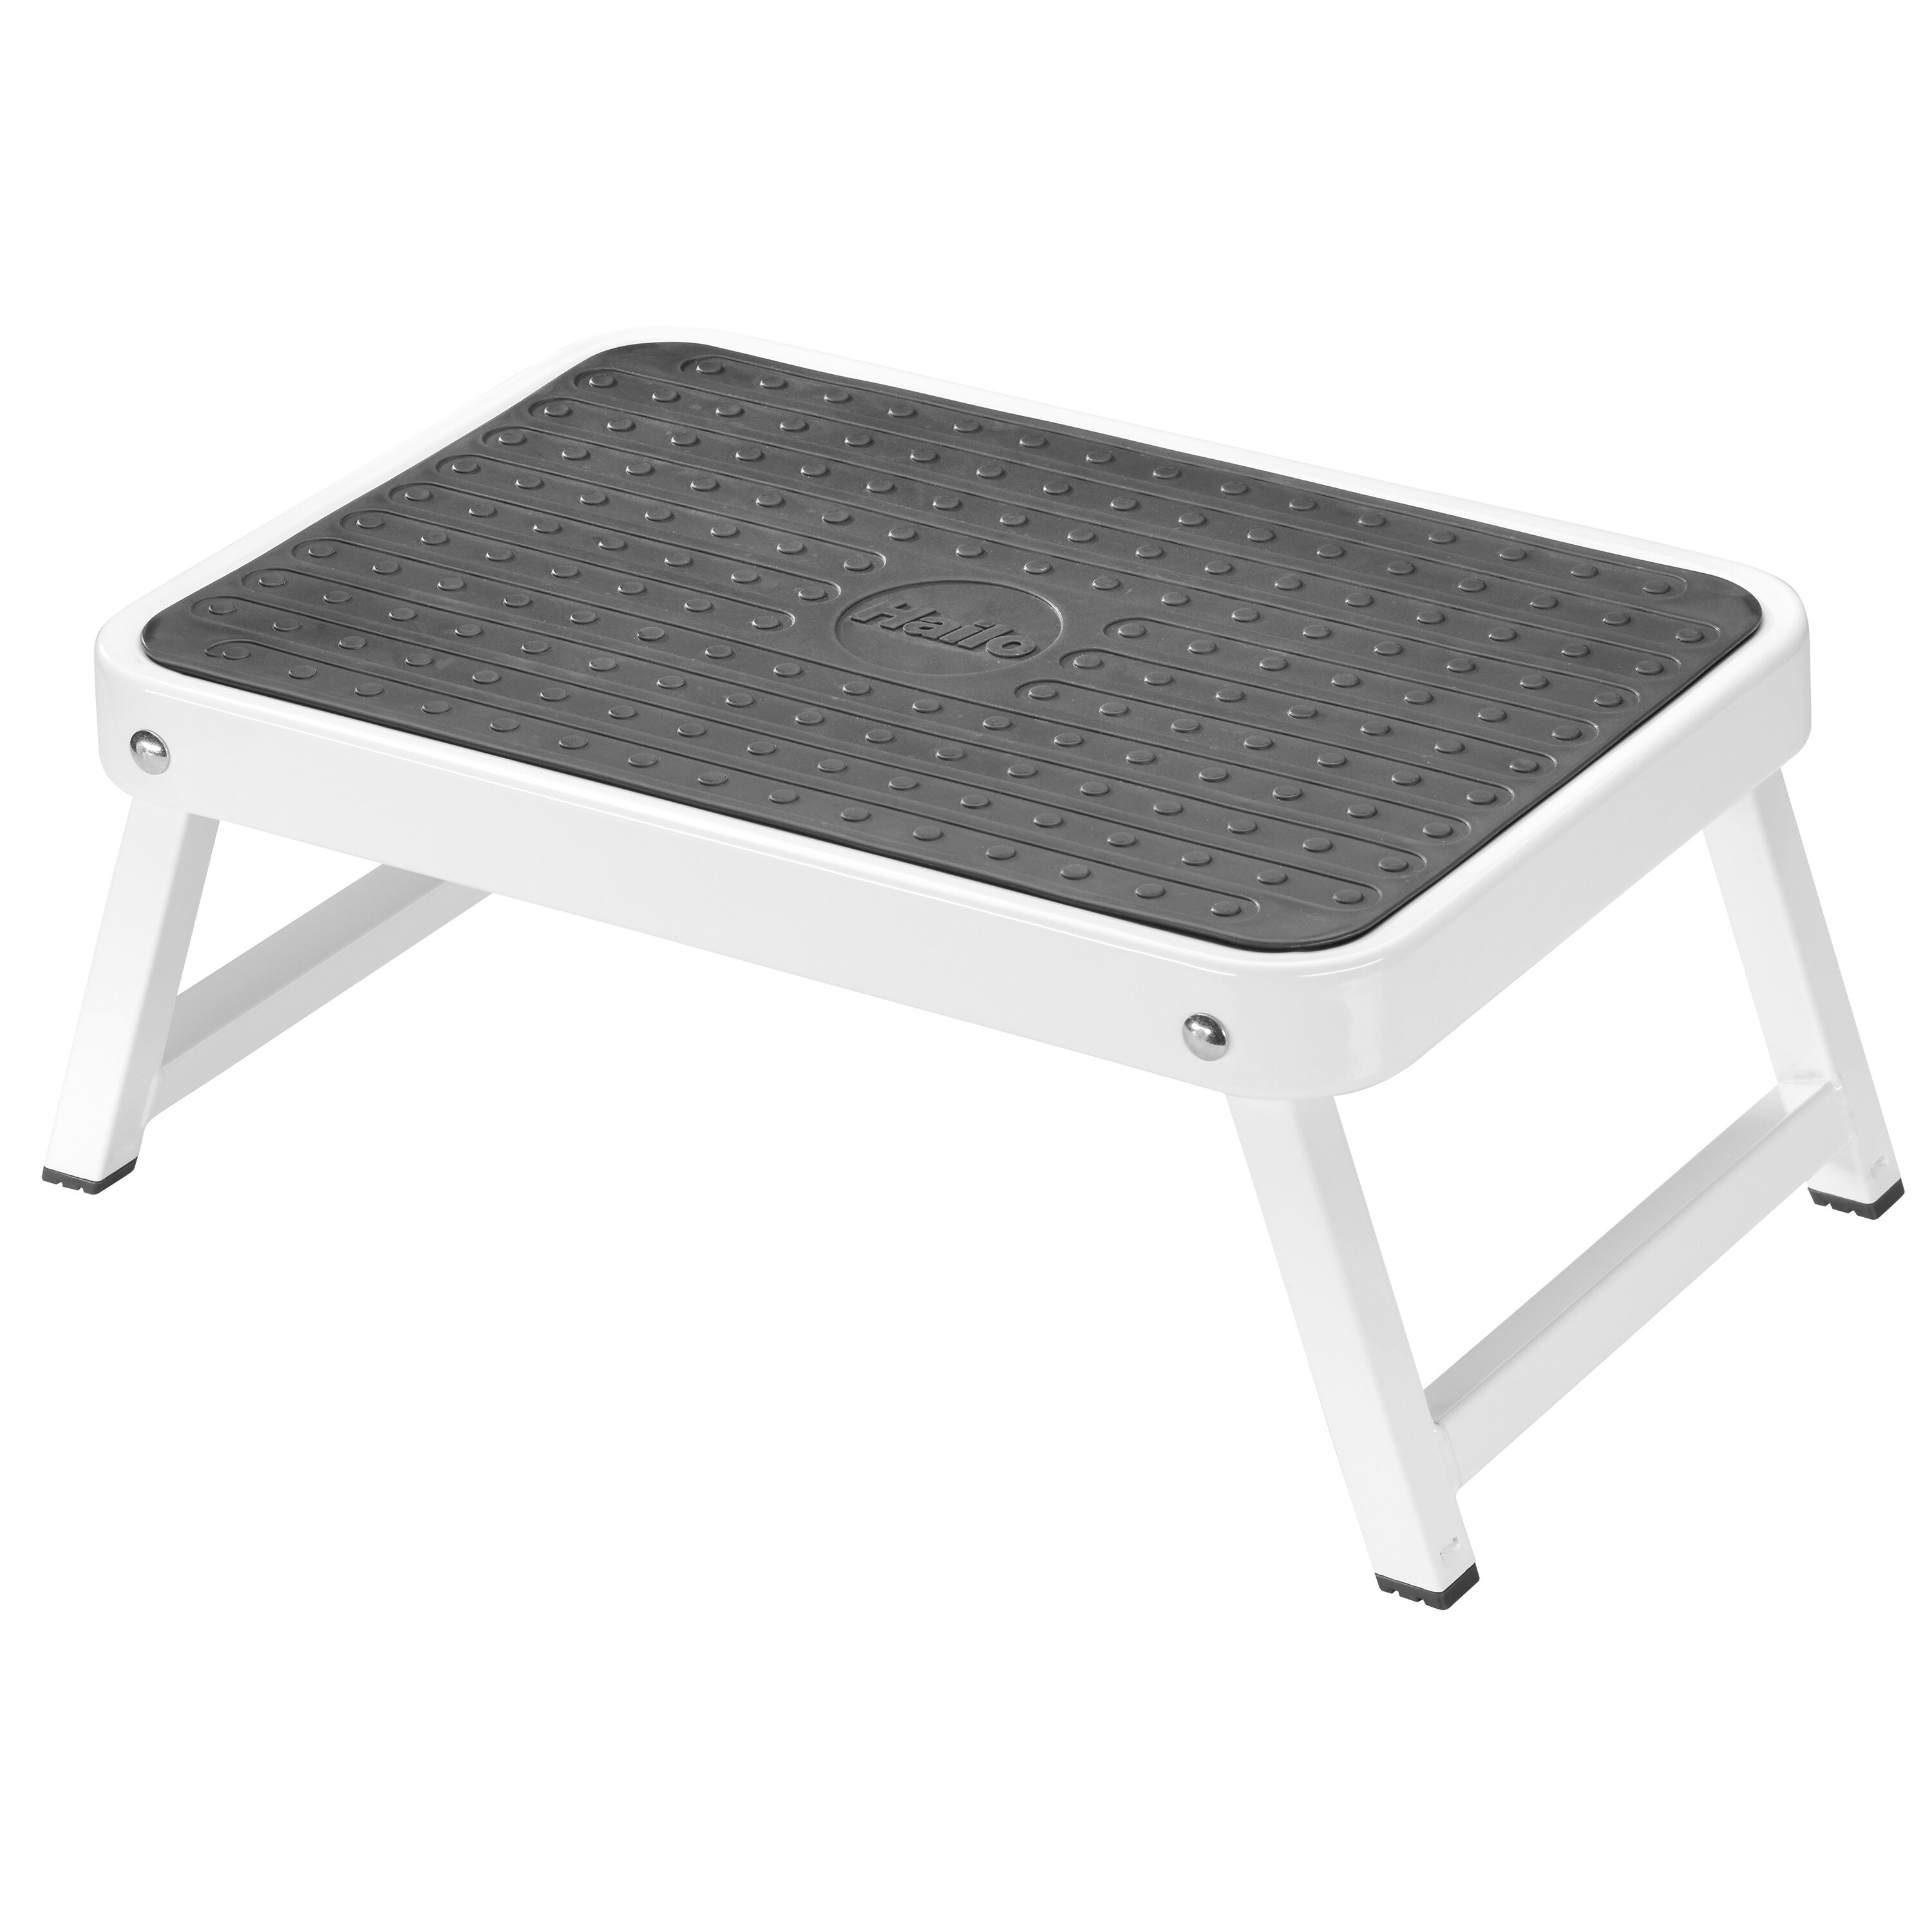 Hailo Usa Inc 1 Step Steel Step Stool With 330 Lb Load